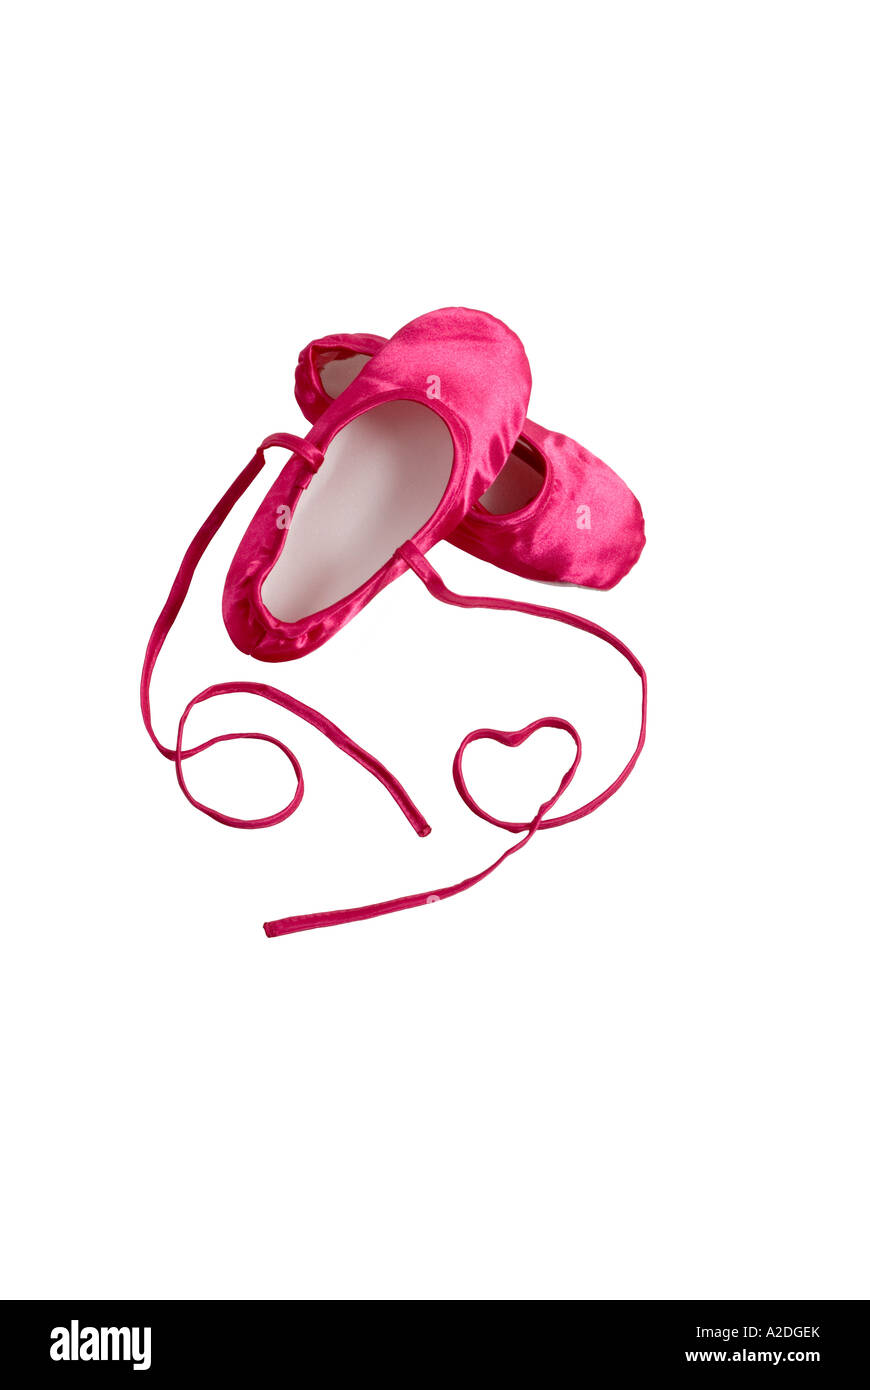 Child's pink ballet shoes - Stock Image